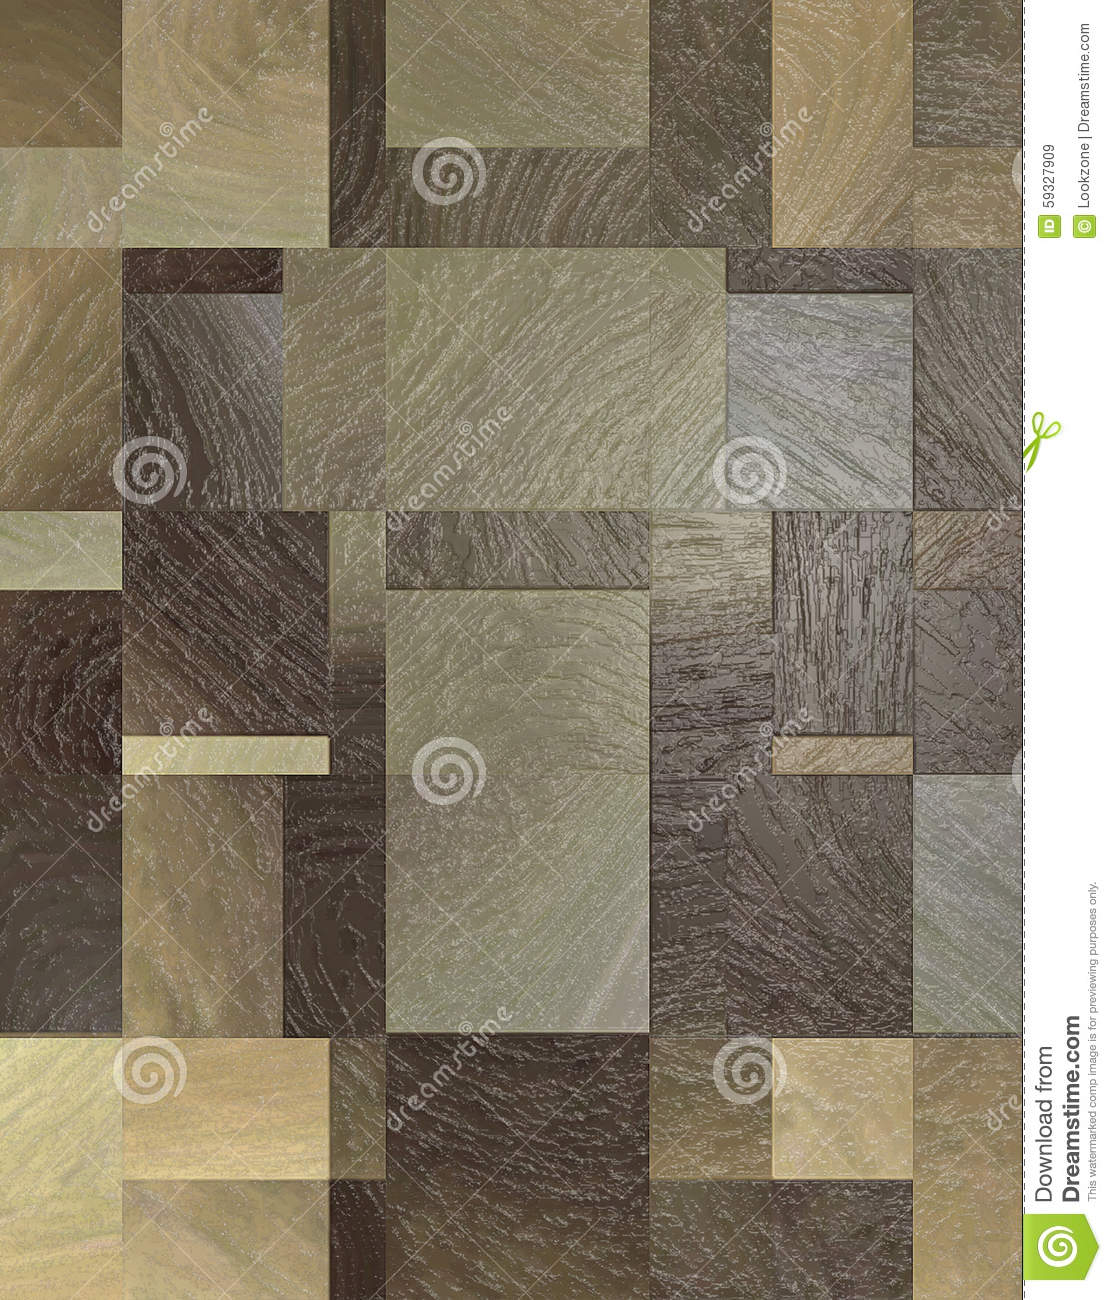 Retro Wood Tile Flooring Stock Photo Image 59327909